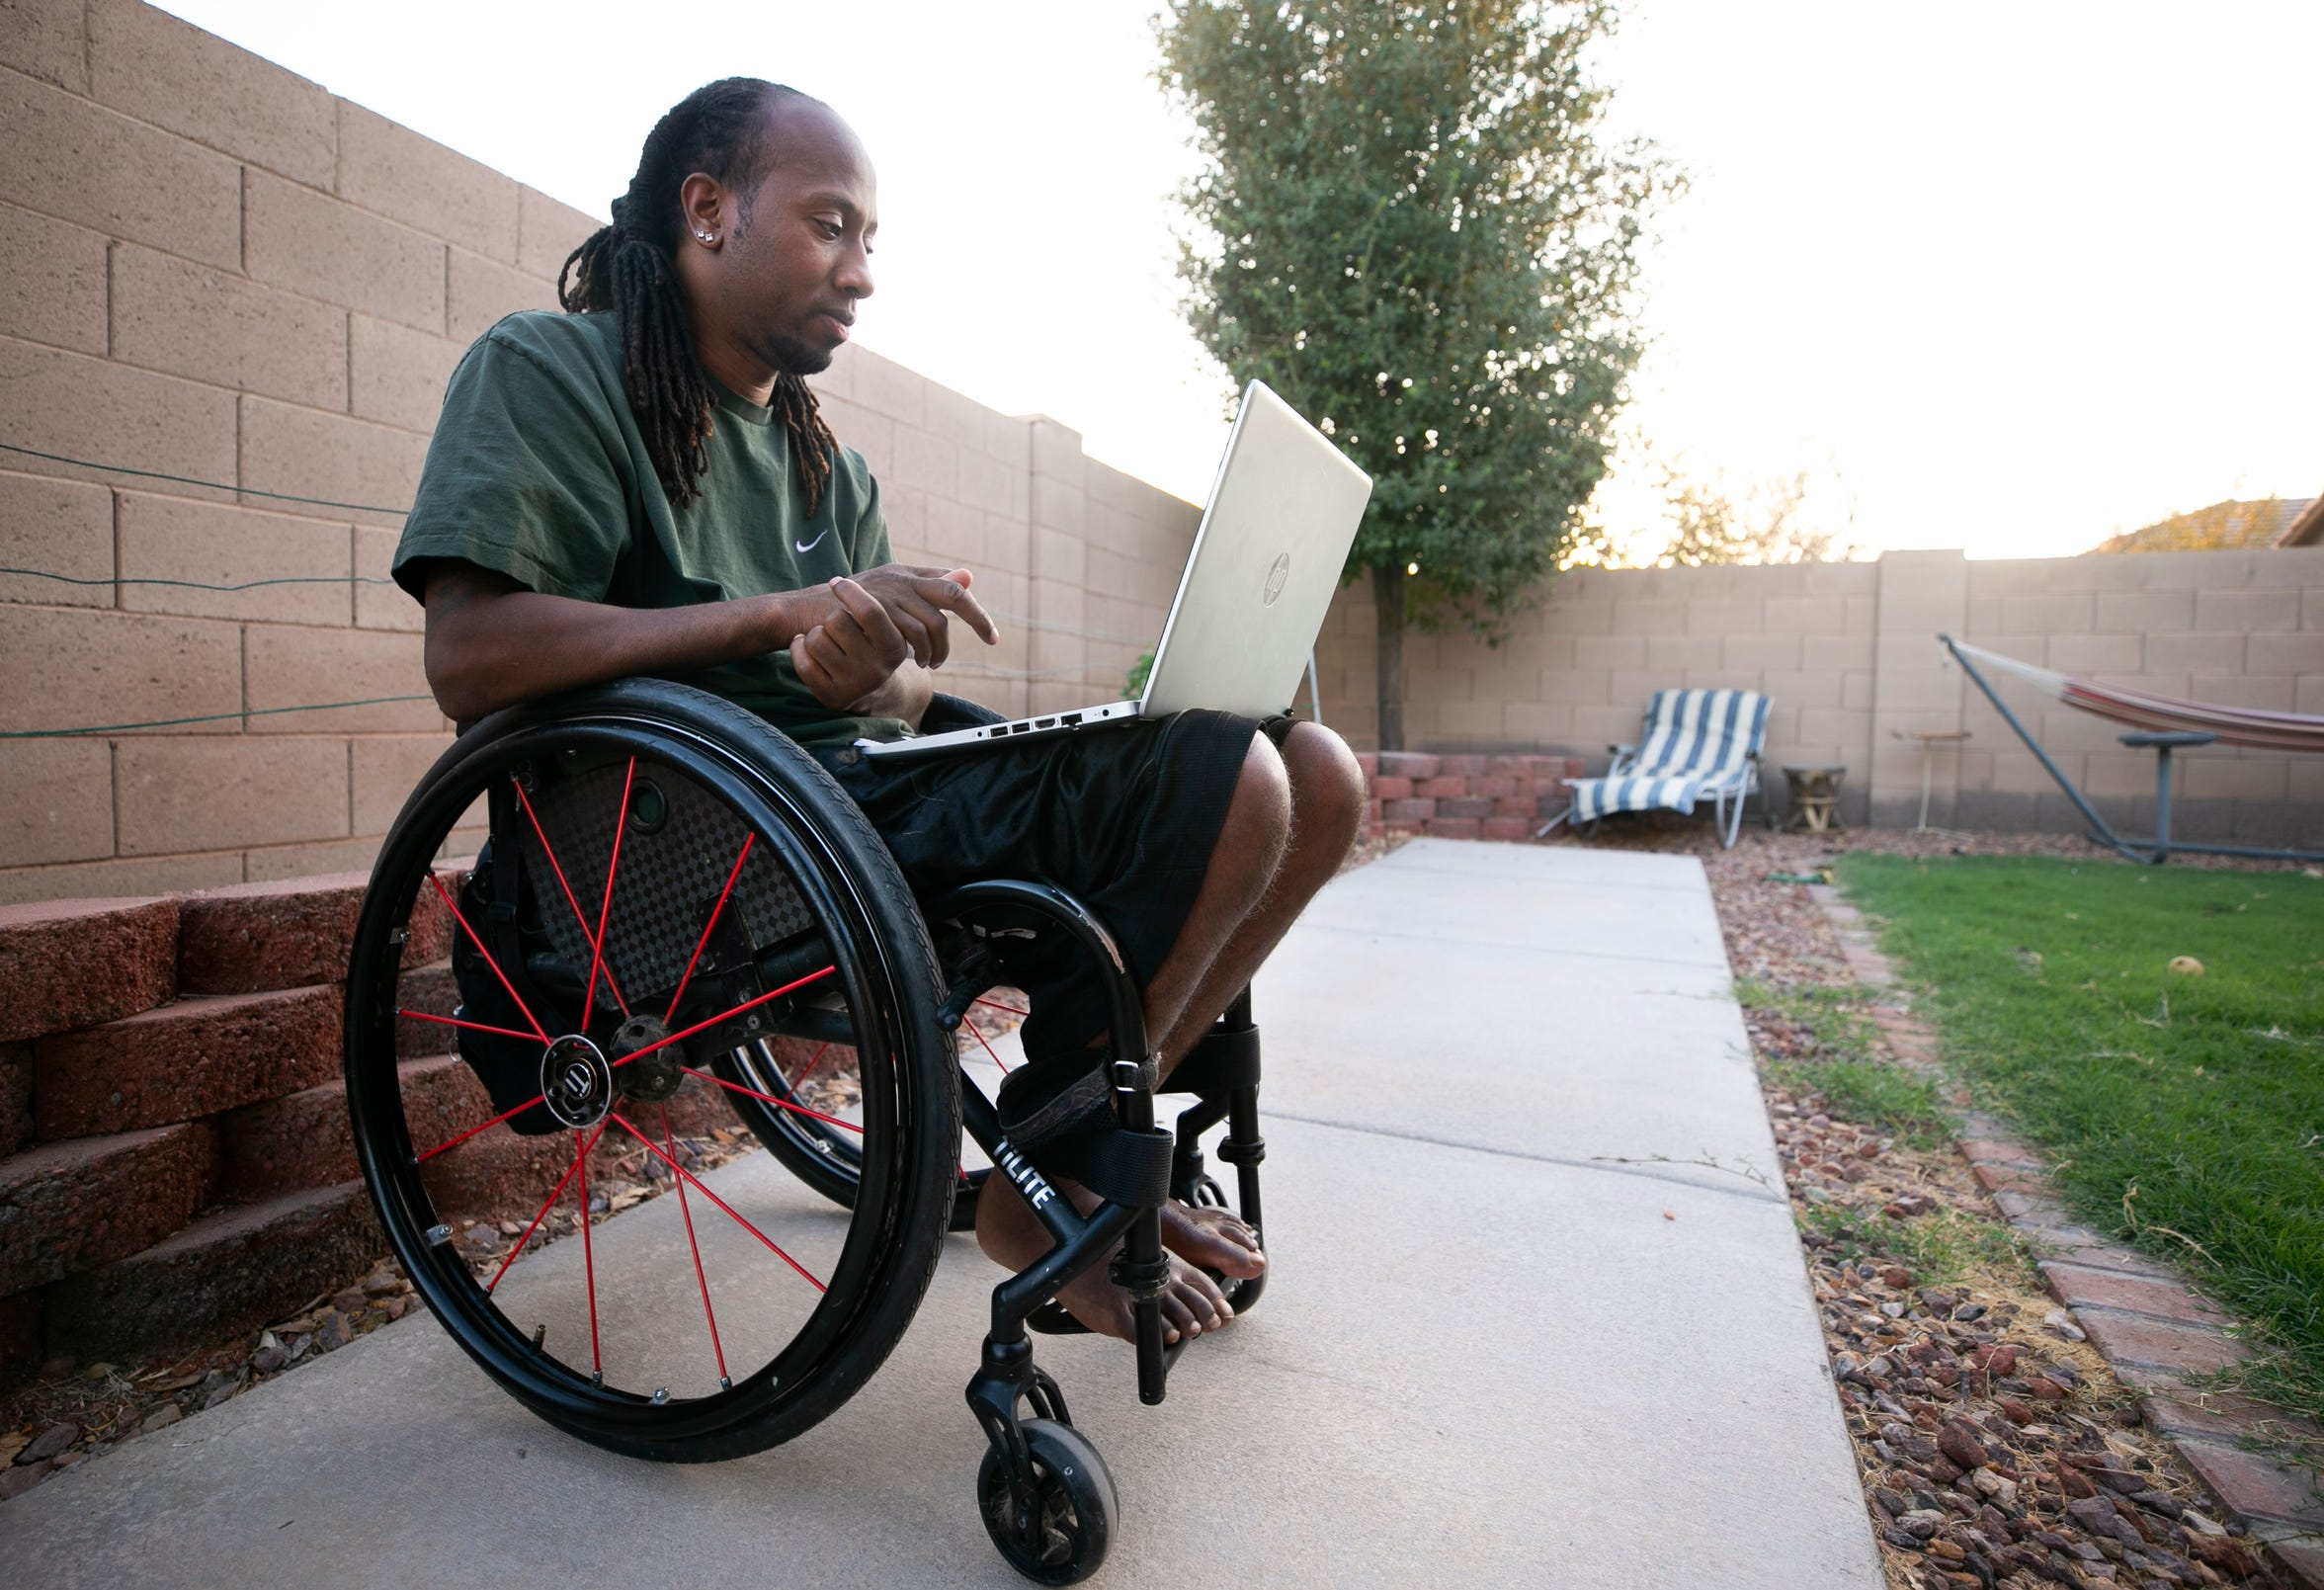 Joe Jackson, 30, who is paralyzed from the chest down, does a sports psychology Zoom meeting with his U.S. national wheelchair rugby teammates at his home in Maricopa on Sept. 24, 2020.